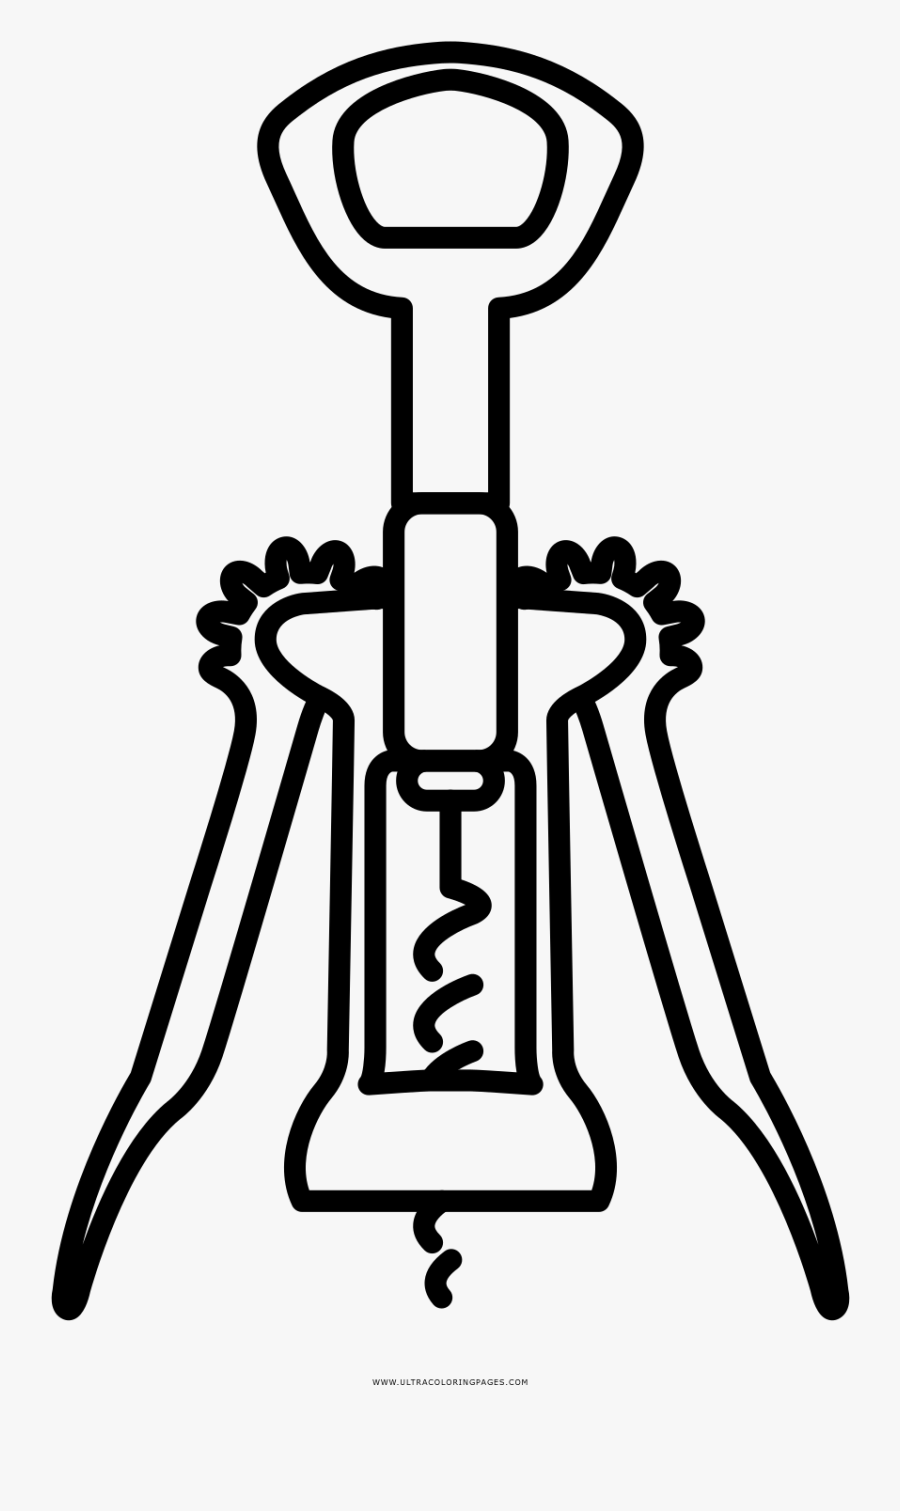 Bottle Opener Coloring Page.